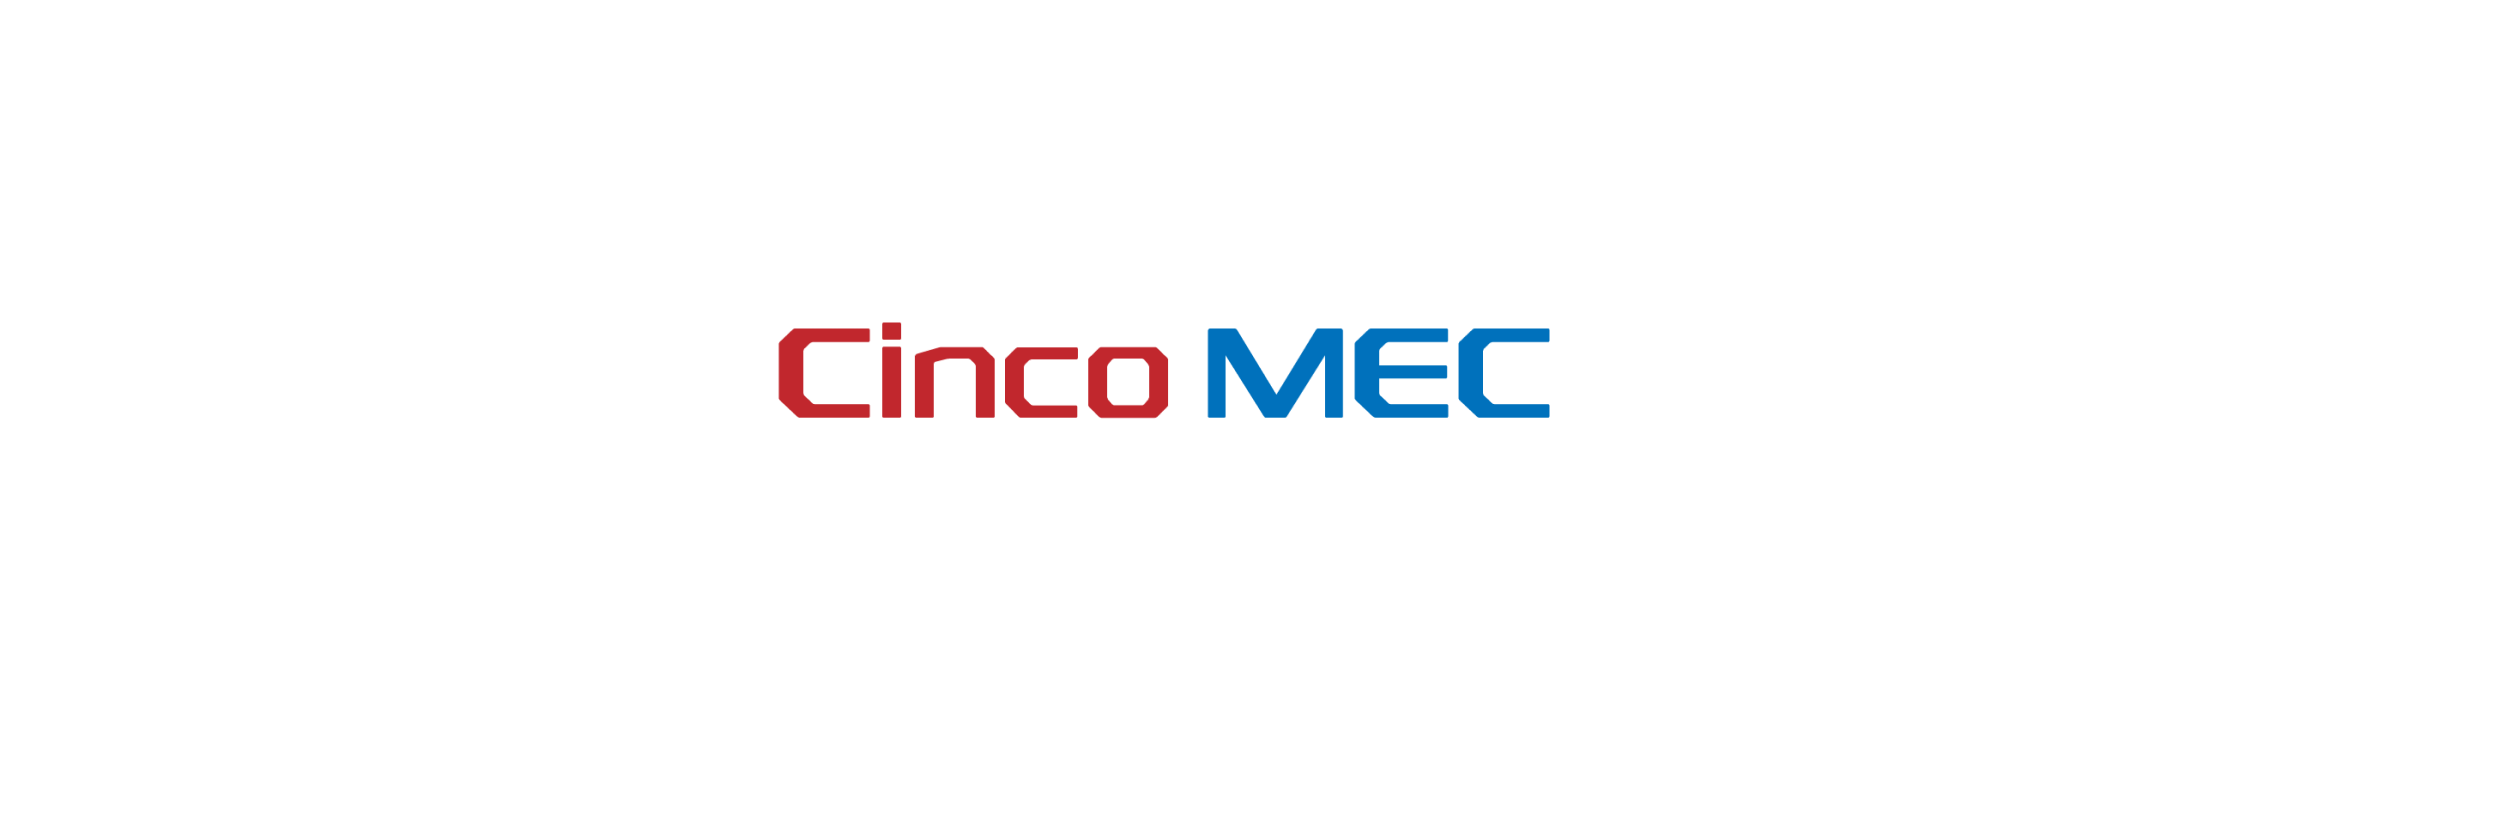 Cinco MEC, Logo